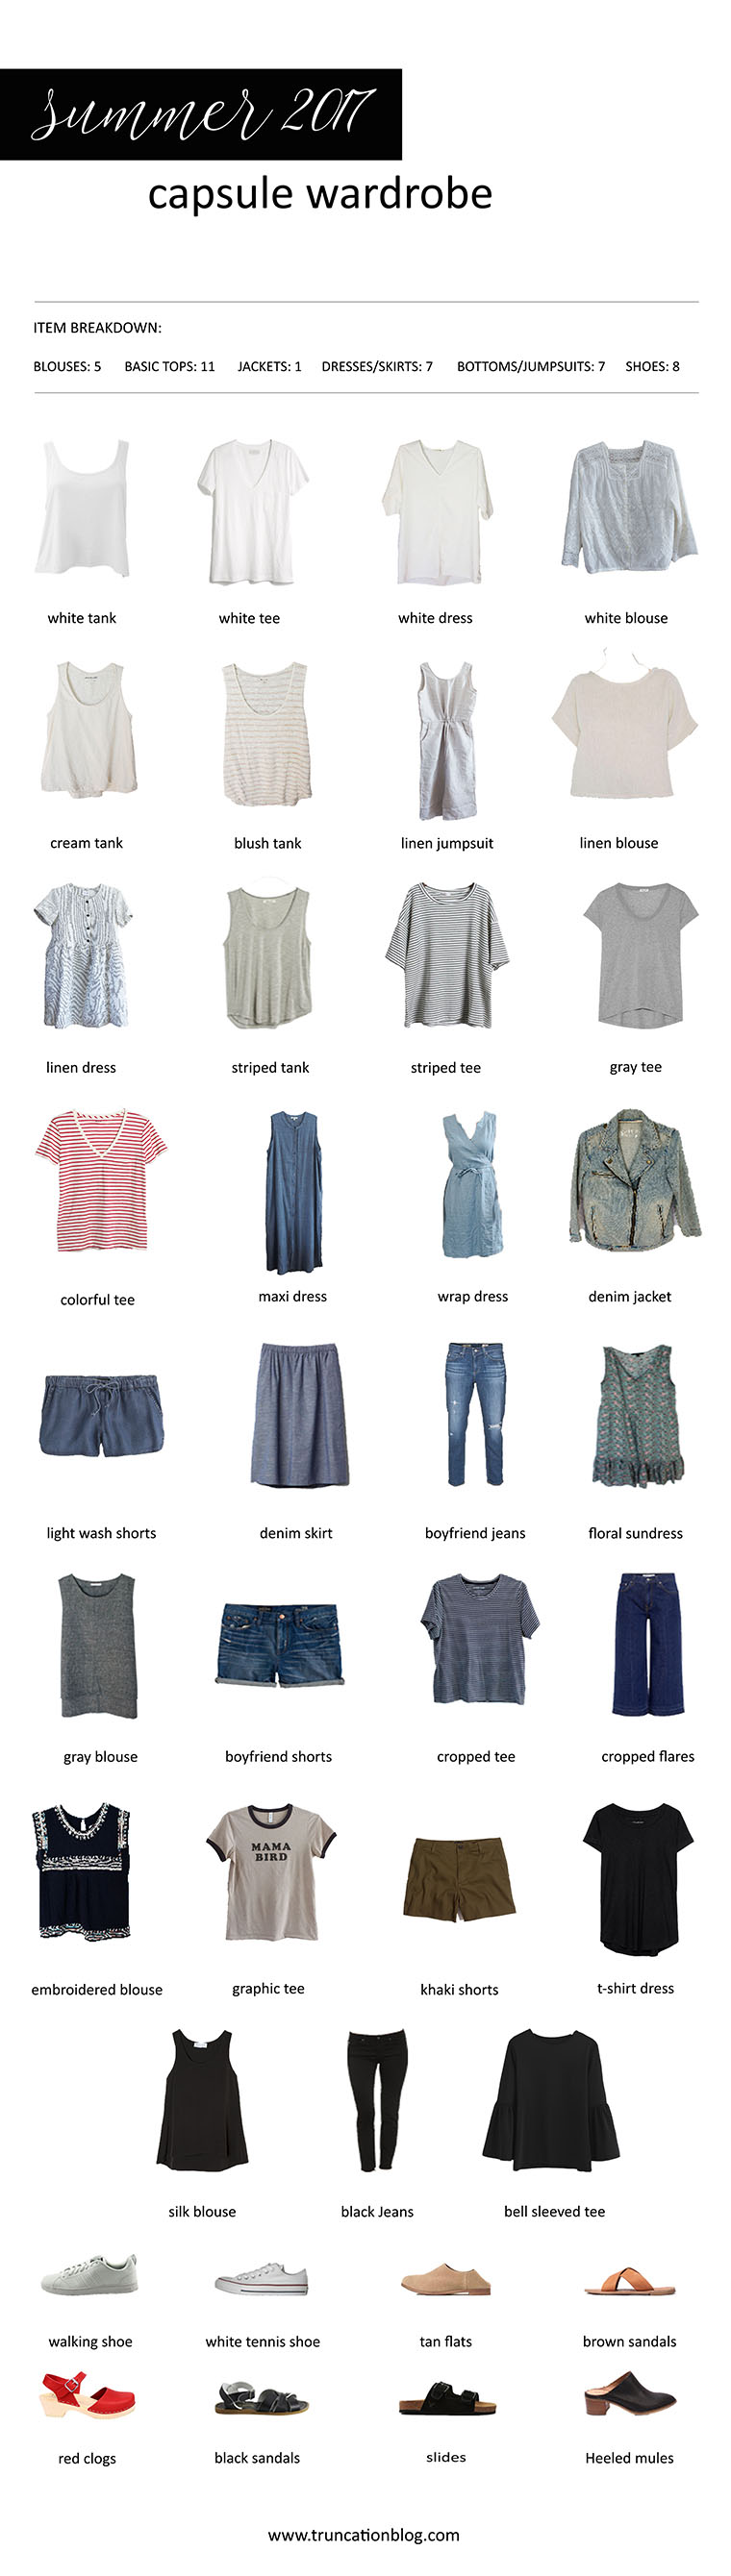 Karin Rambo of truncationblog.com shares 2017 Summer Capsule Wardrobe